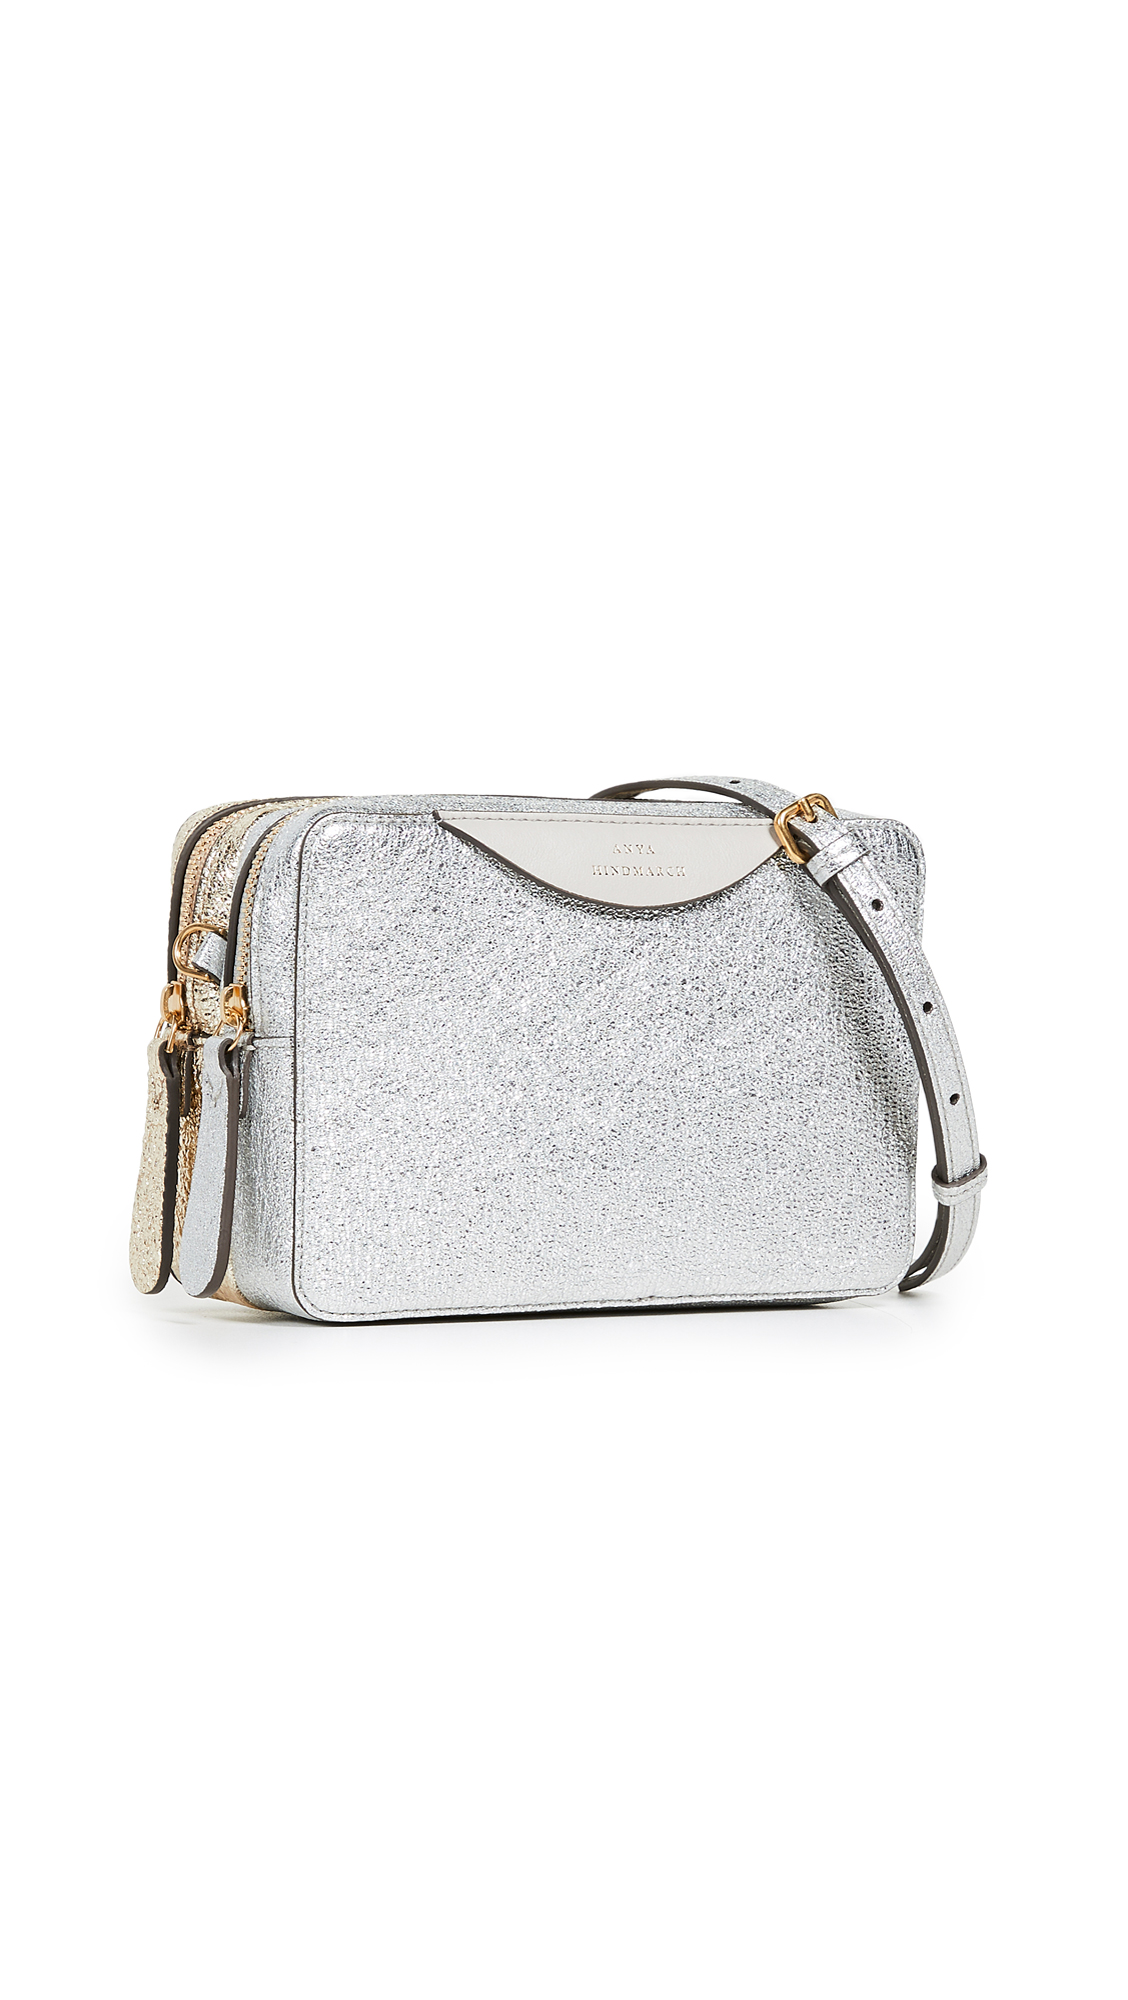 Anya Hindmarch Stack Double Wallet on Strap In Light Gold/Silver